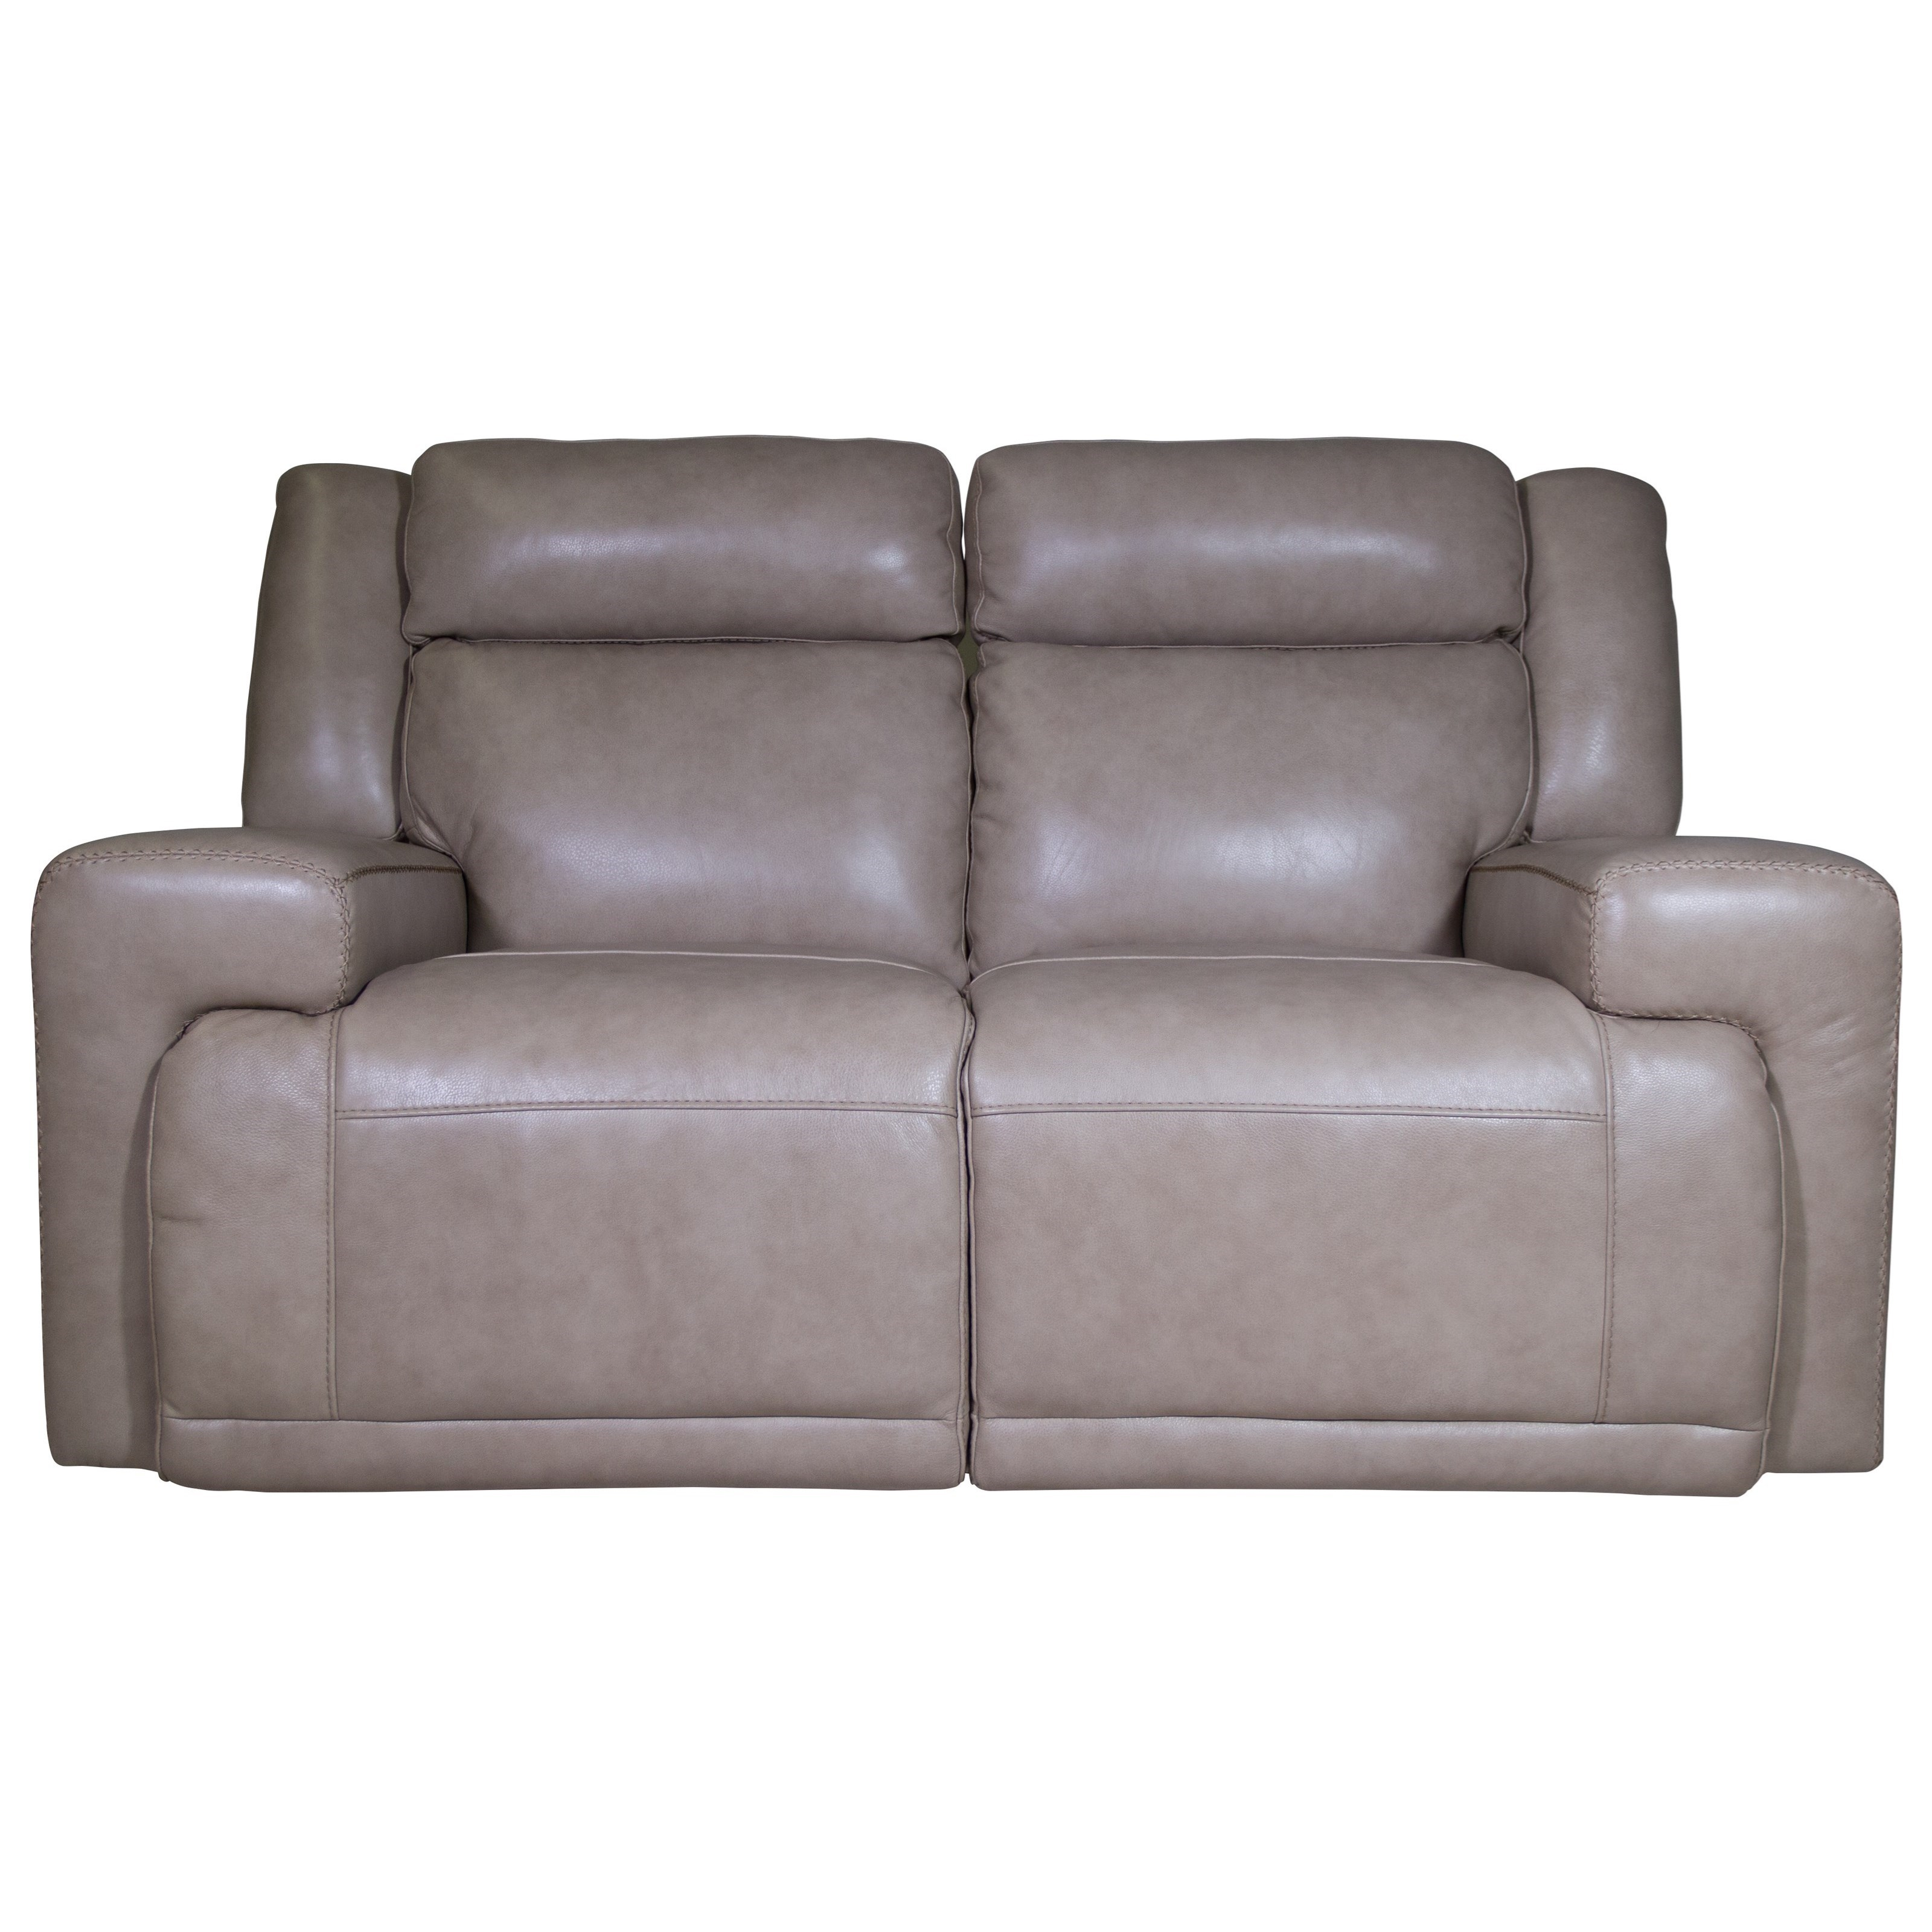 Futura Leather Burke Power Reclining Loveseat HomeWorld